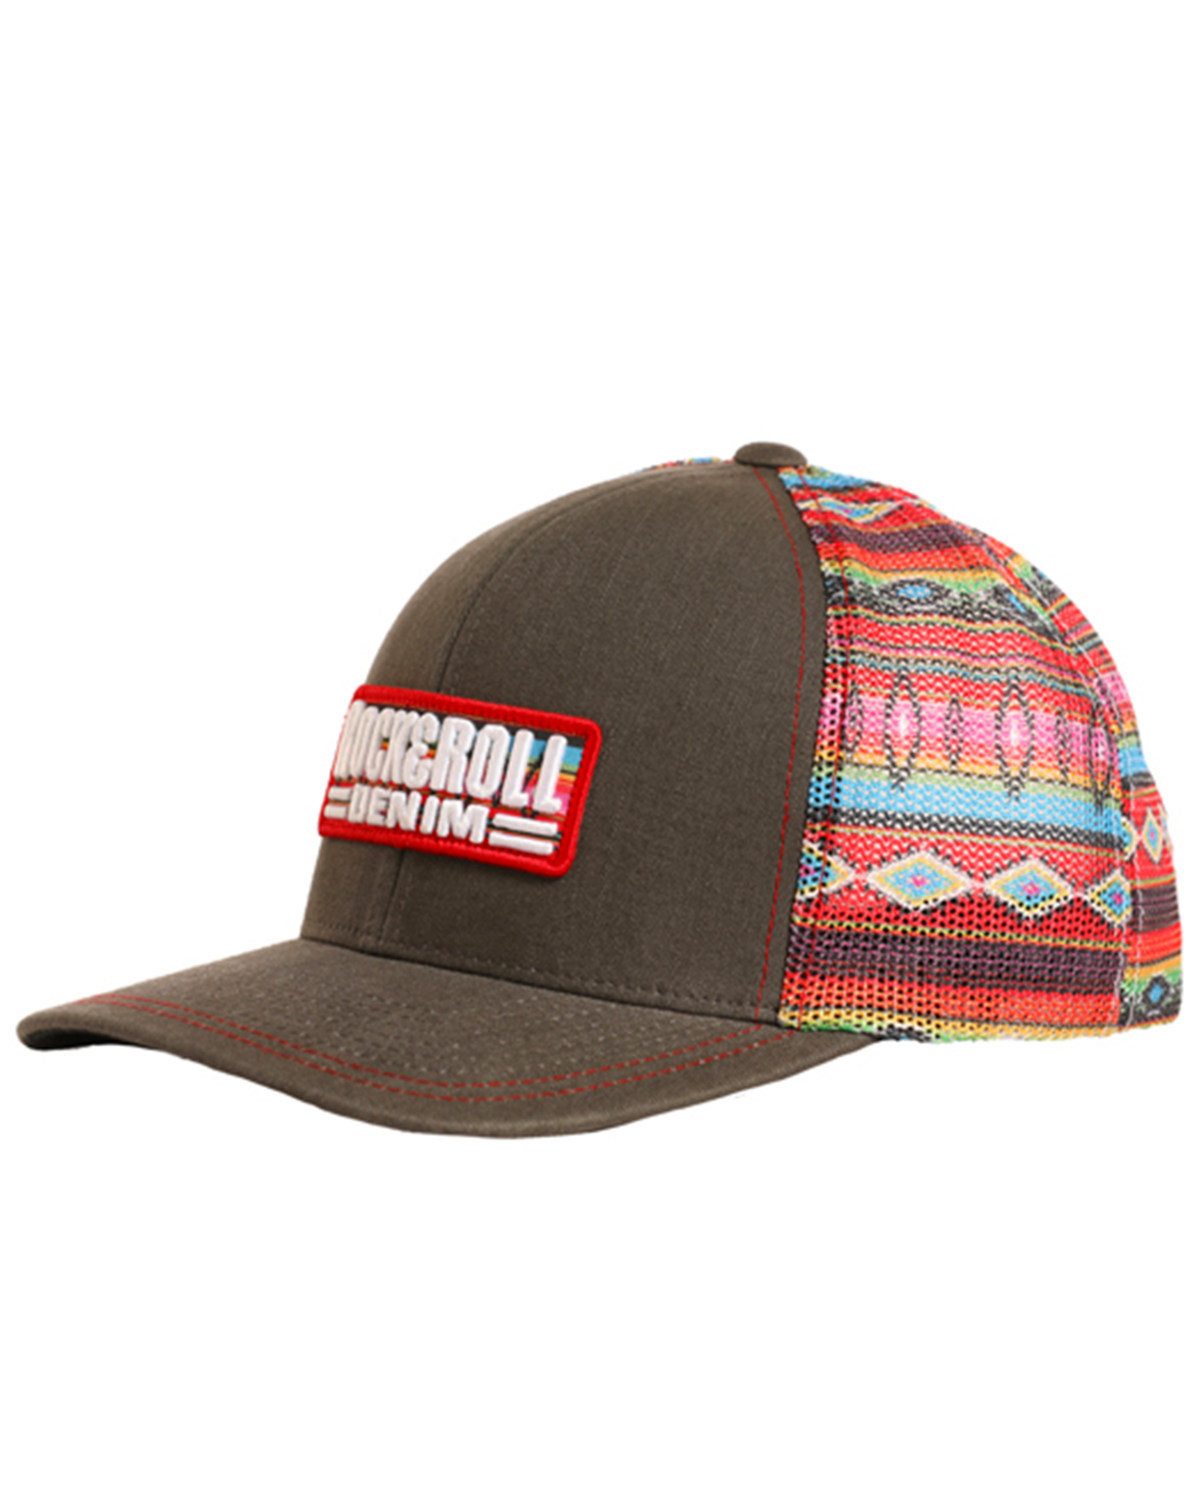 Rock   Roll Denim Men s Serape Printed Mesh Cap  6991e530002